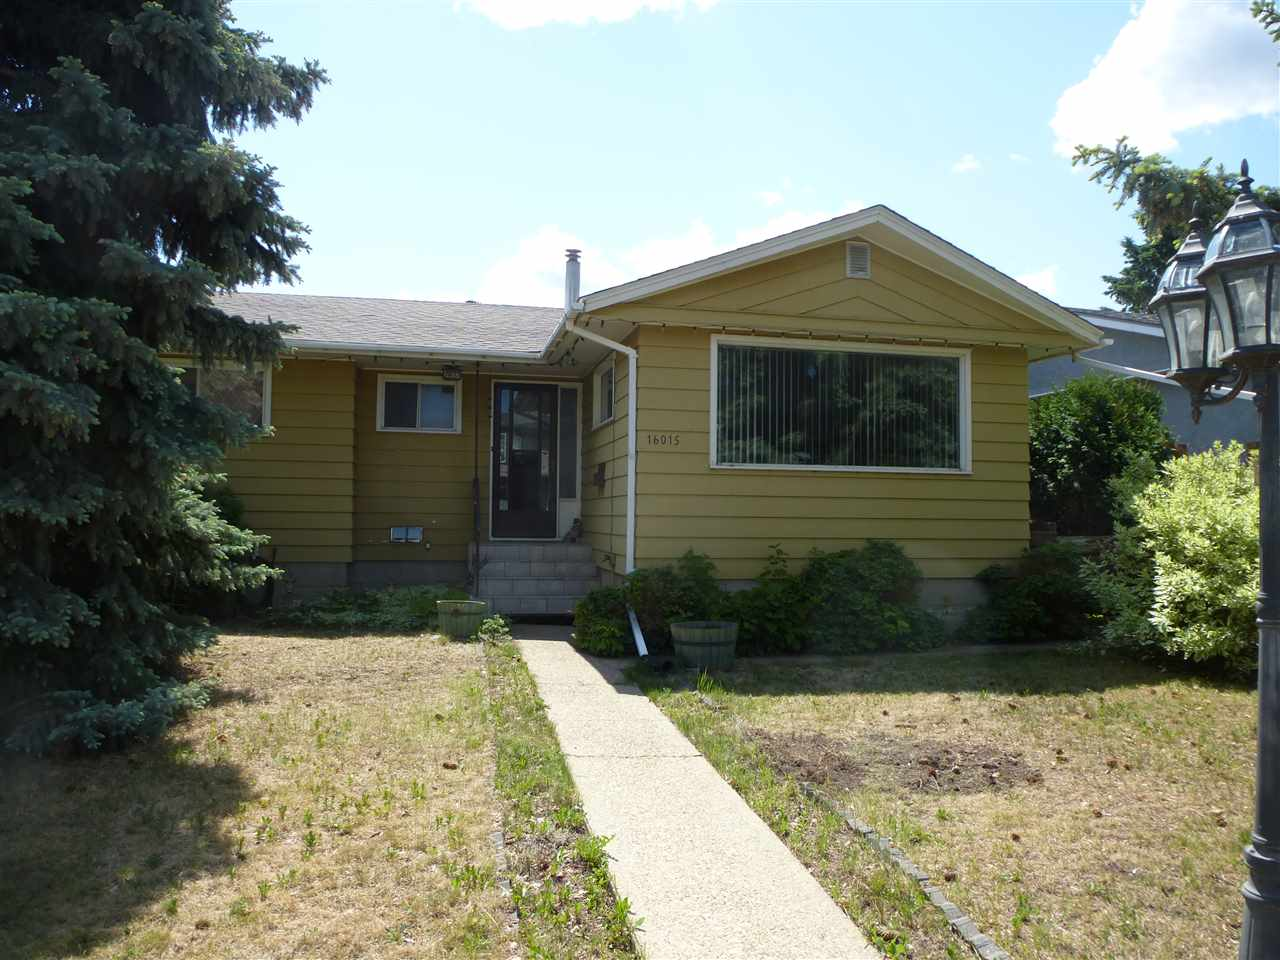 MLS® listing #E4146144 for sale located at 16015 103 Avenue